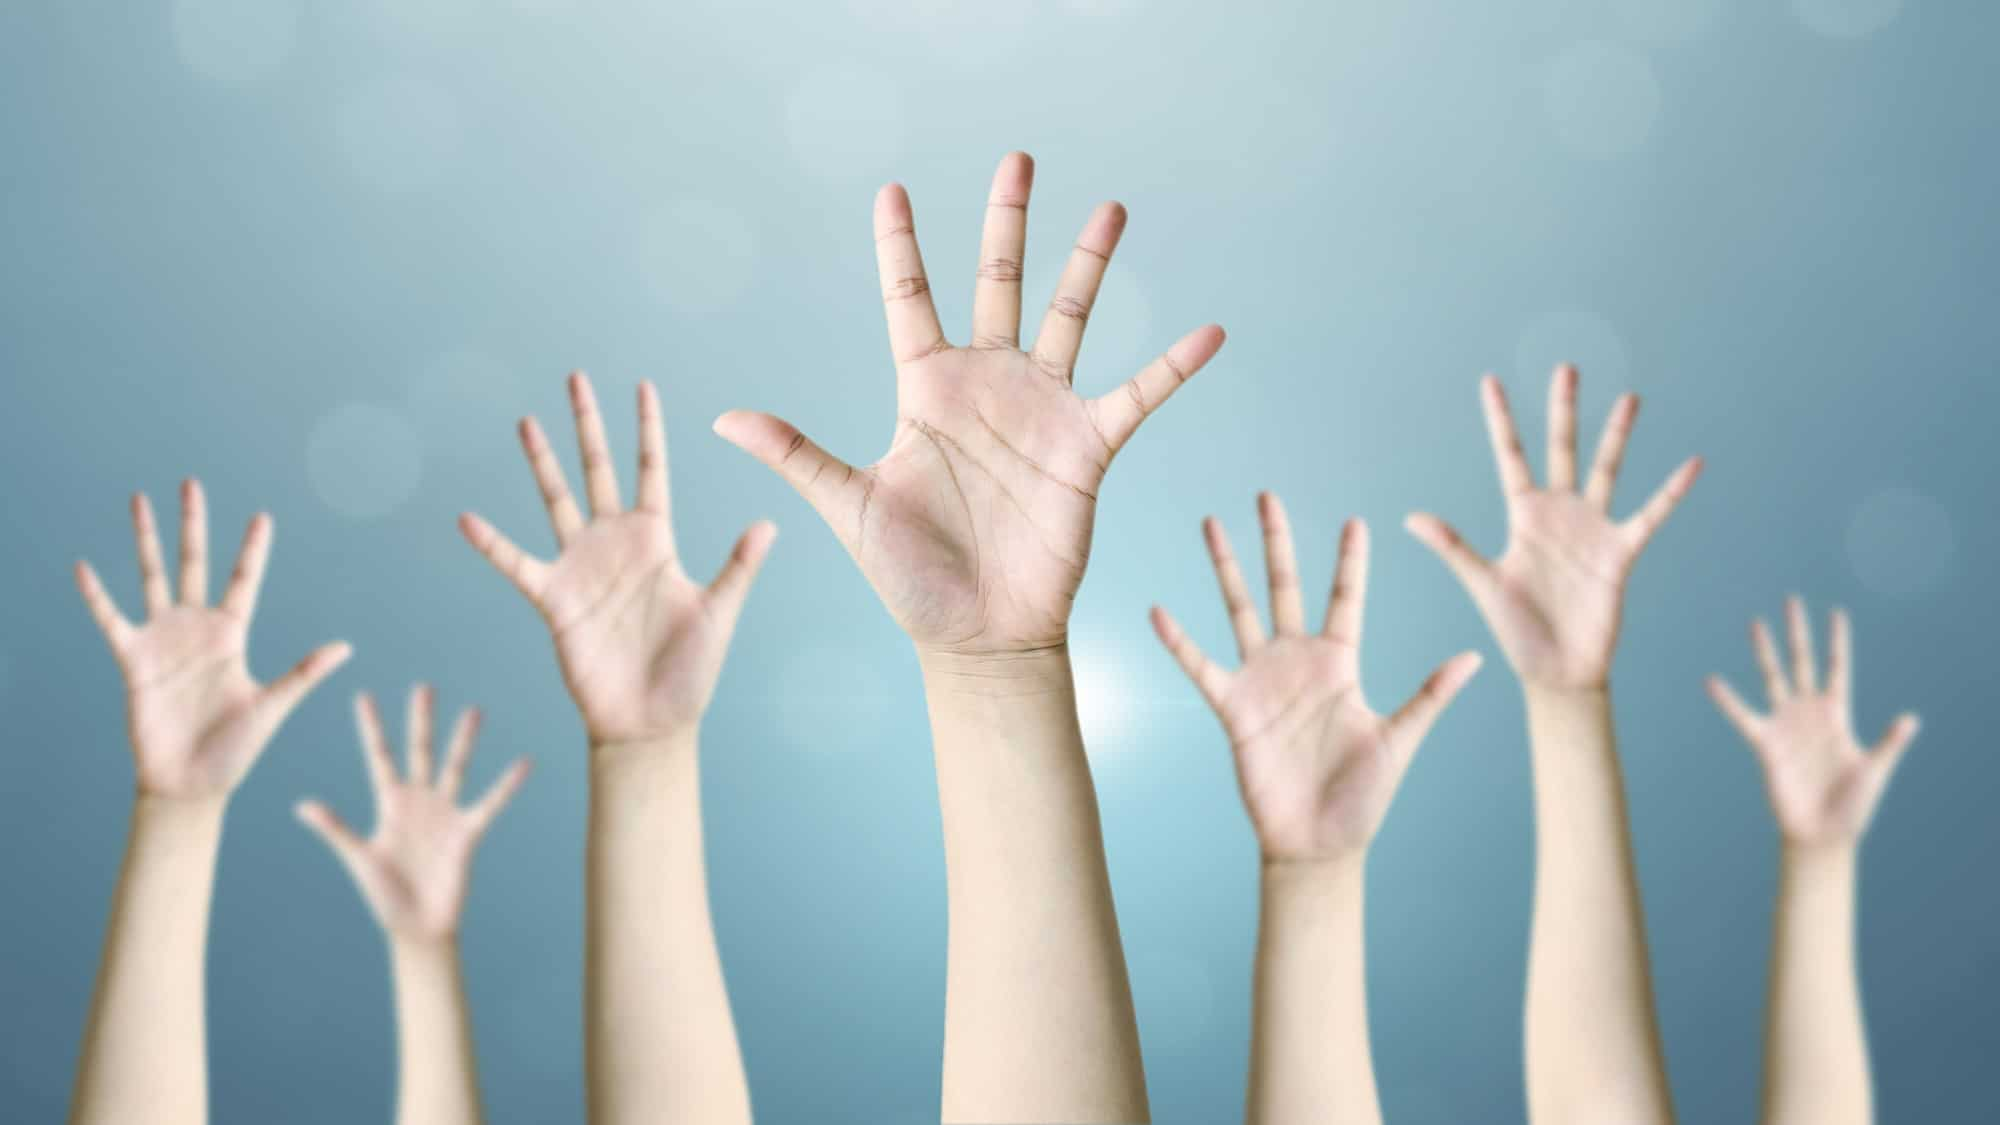 asx share price vote represented by lots of hands up in the air